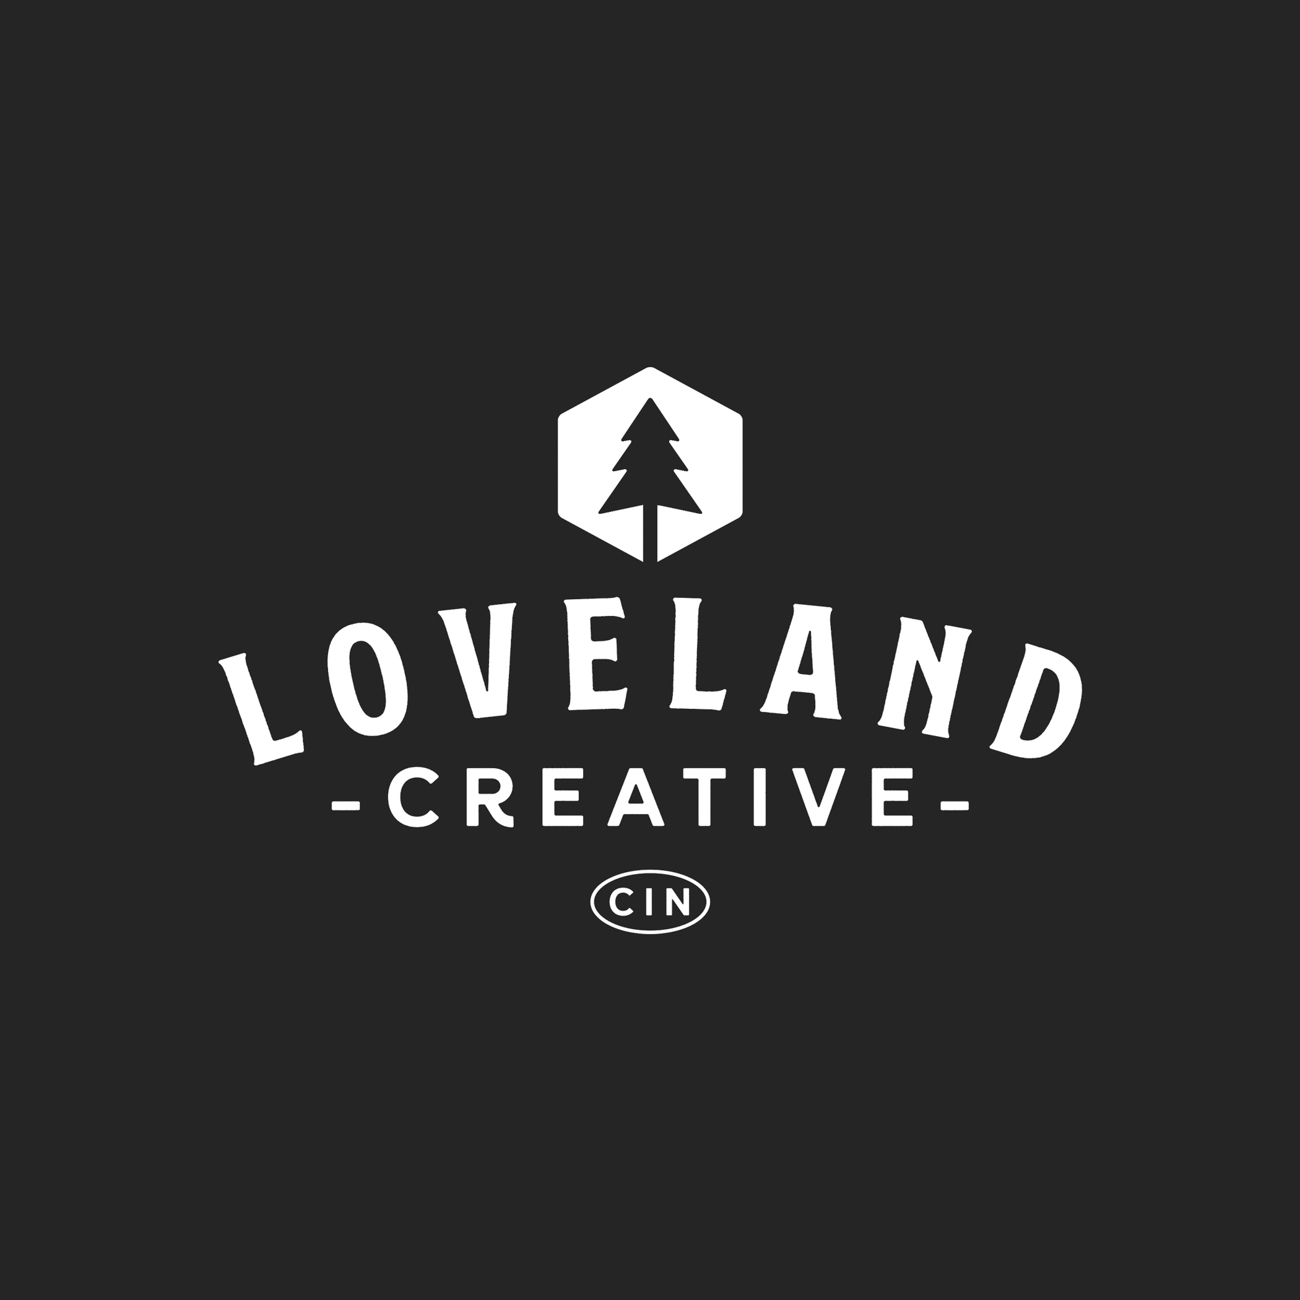 David Baillie is the graphic artist behind Loveland Creative, a design firm that specializes in logo creation, branding, and other media-based services. T-shirts with new designs are a sizable portion of his portfolio. He prides himself on understanding clients' desired aesthetics in order to create an original piece of art for them. / Image courtesy of Loveland Creative // Published: 8.3.18